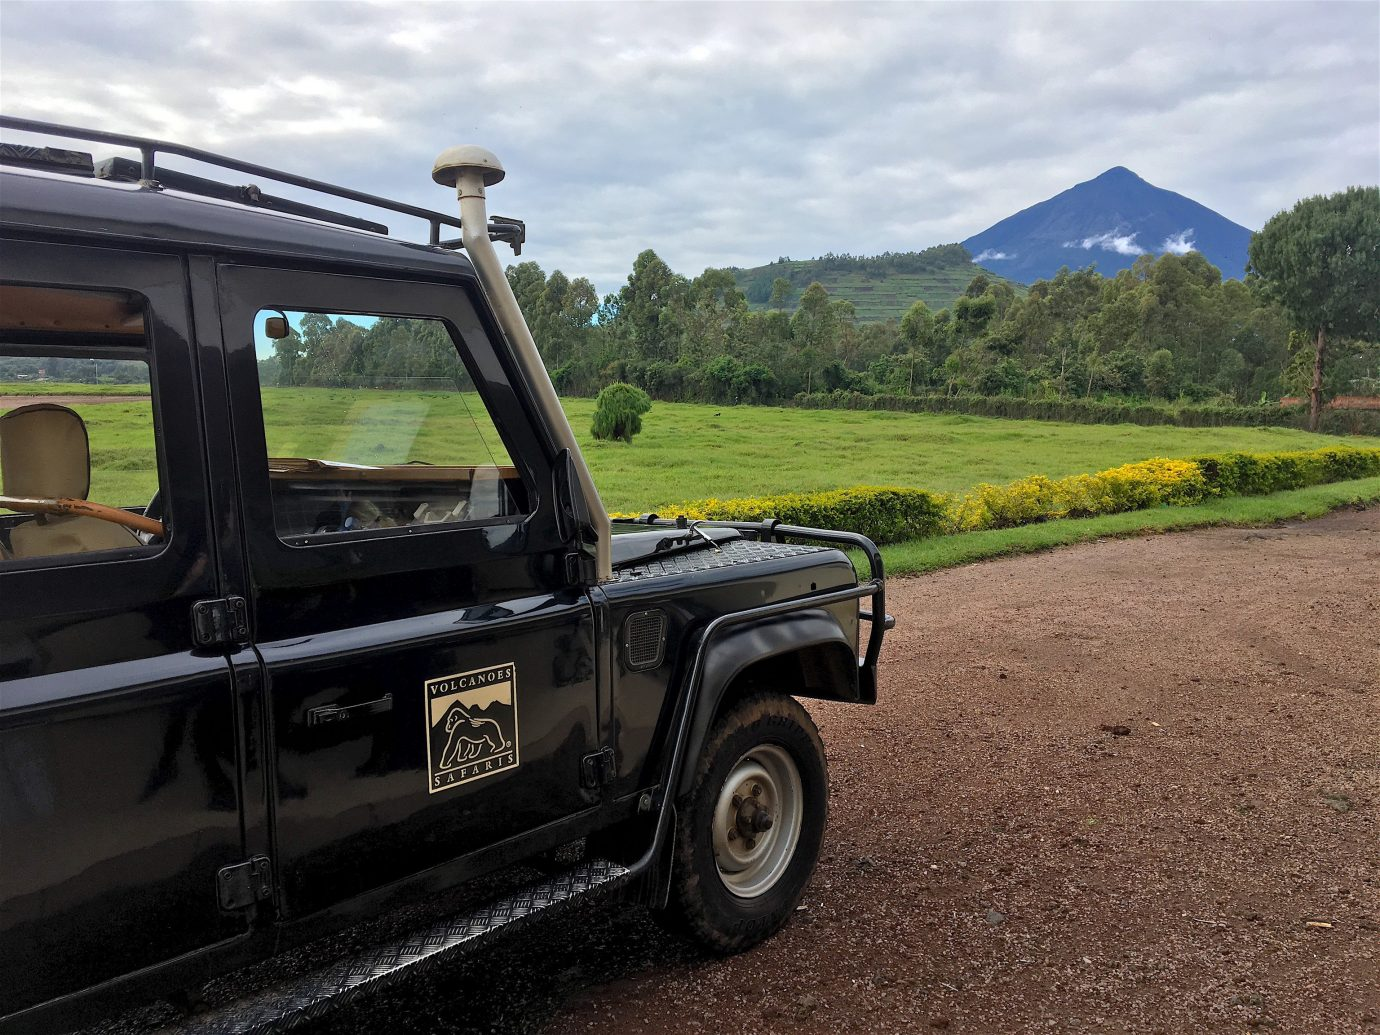 Trip Ideas sky outdoor car truck motor vehicle vehicle transport mode of transport off roading road off road vehicle automotive exterior landscape tree plant land rover defender sport utility vehicle automotive tire jeep Safari window dirt